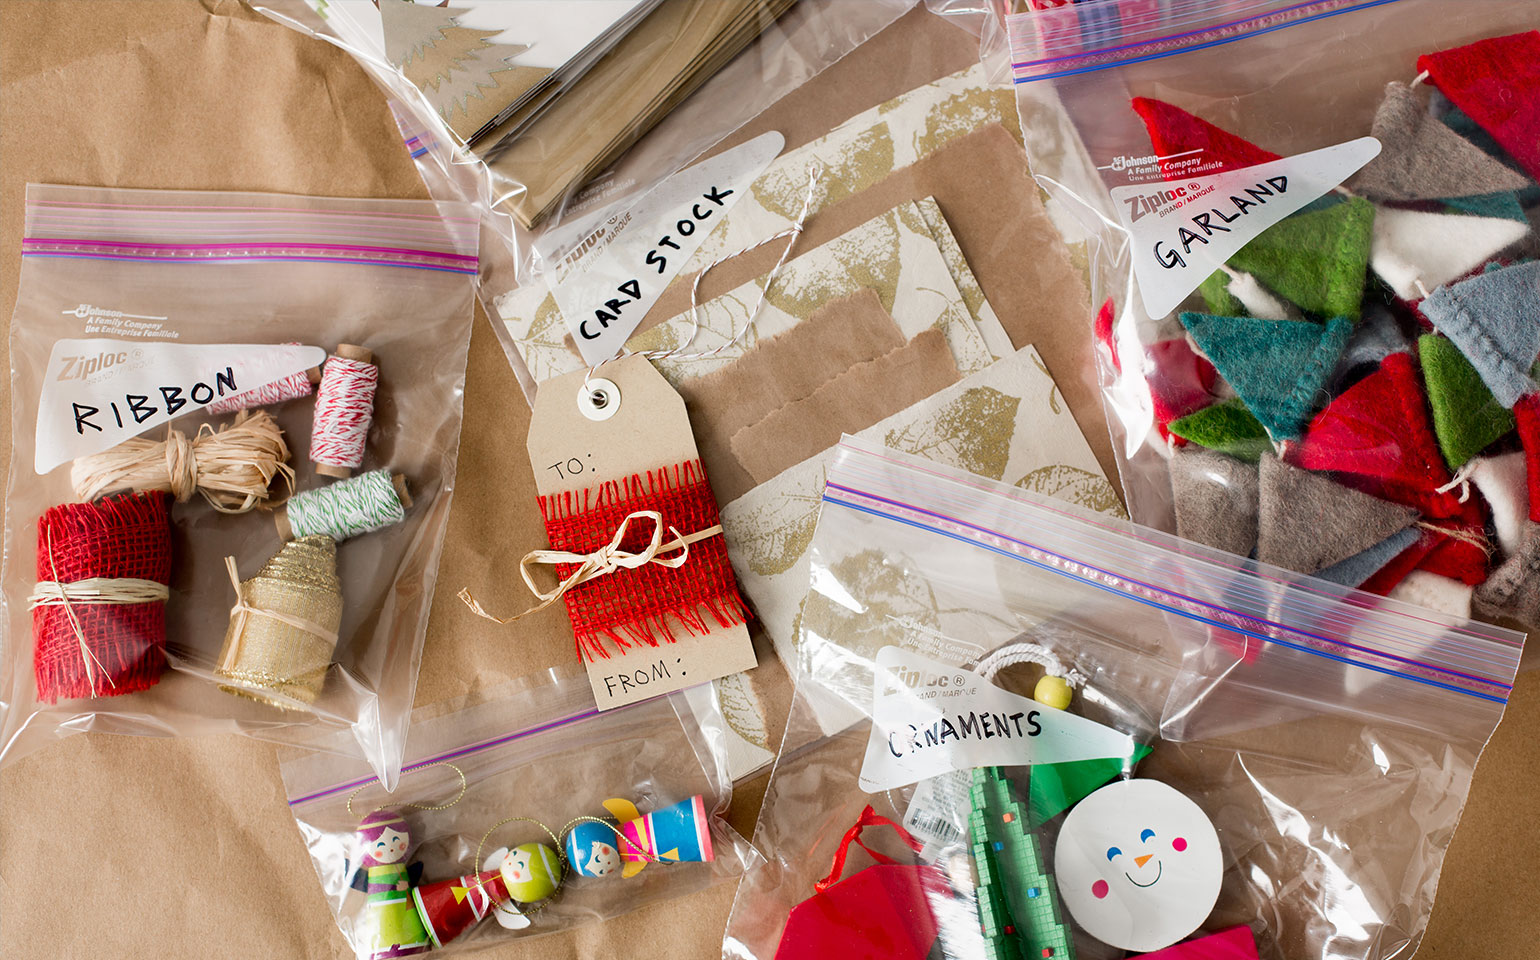 Til-Next-Year-The-Great-Holiday-Wrap-Up-Ziploc-Brand